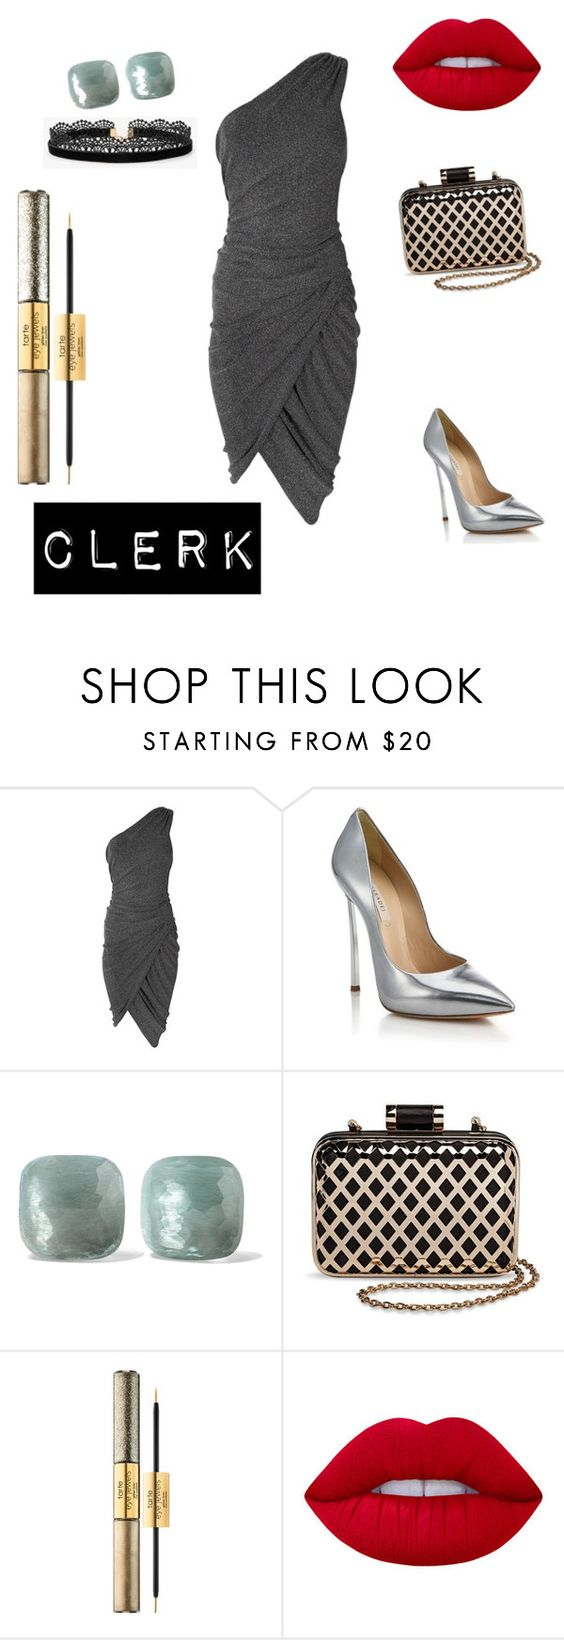 """clerk"" by anjola112 on Polyvore featuring Casadei, Pomellato, Tevolio, tarte, Lime Crime and Azalea"